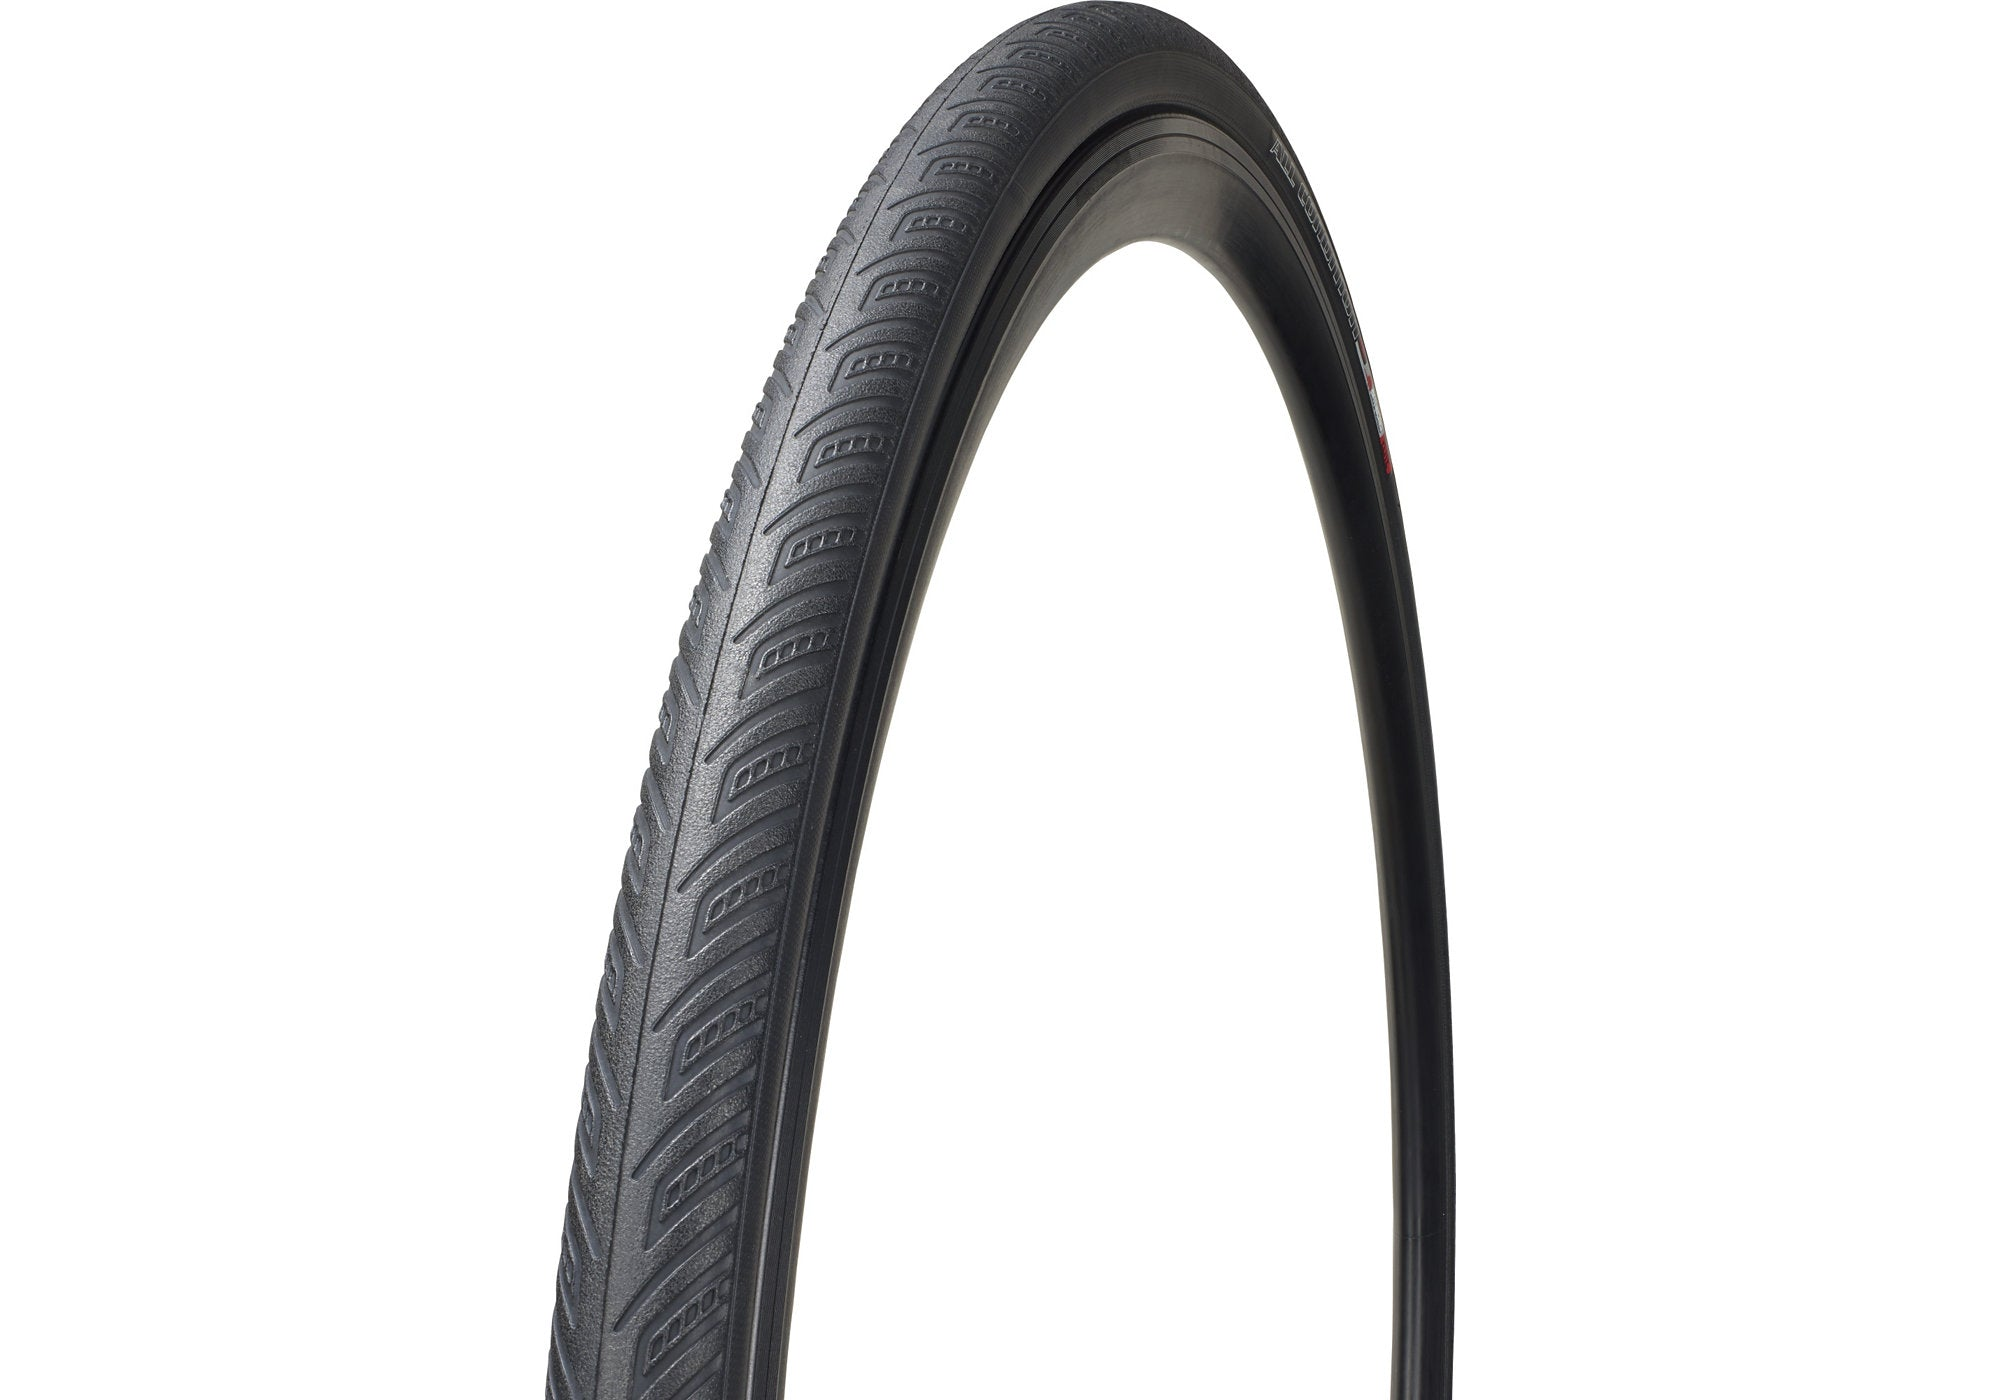 Specialized All Condition Armadillo Elite Road Tyres 700x23C/700x25C